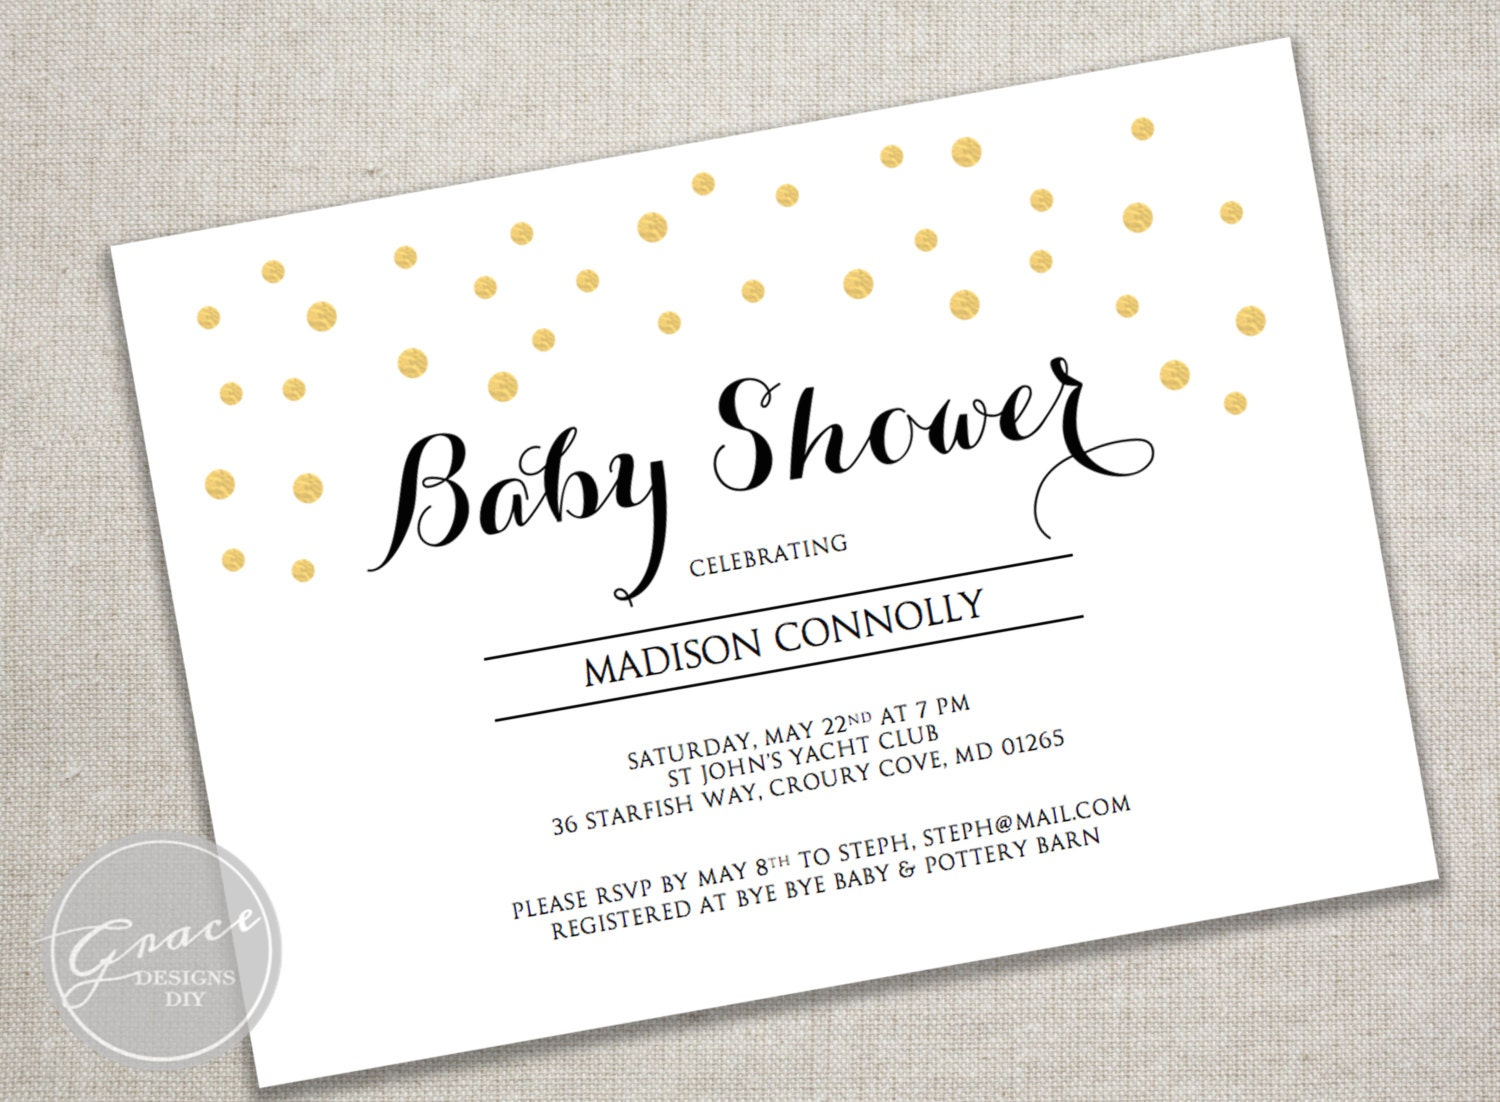 printable baby shower invite black calligraphy style font